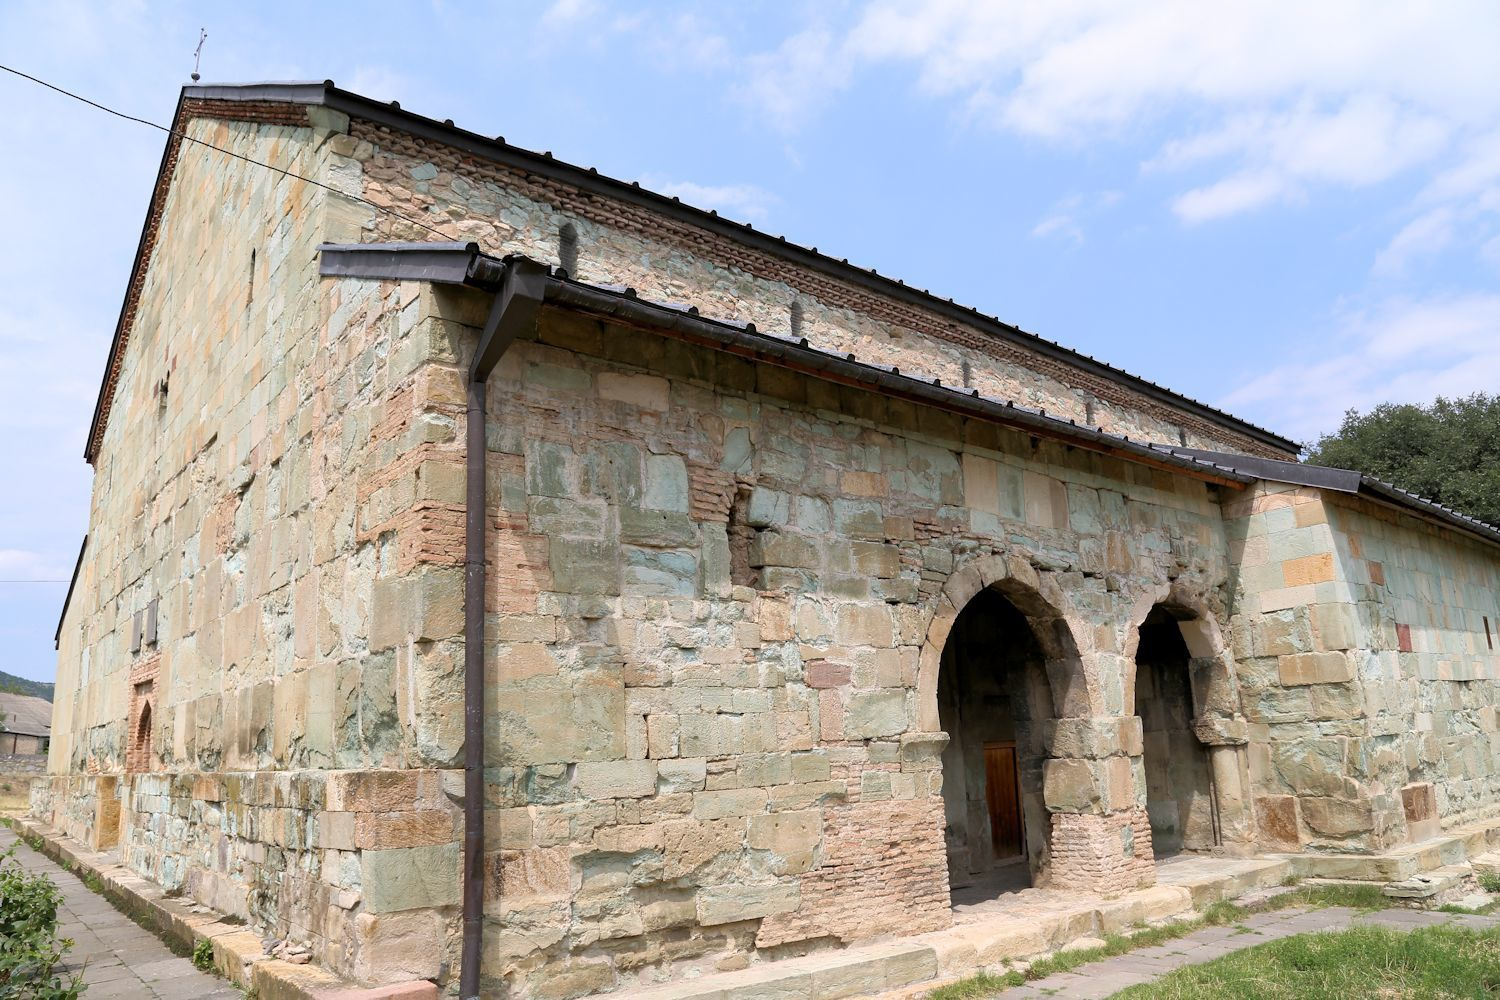 The church looks simple and laconic. The walls are tiled with smooth rich turquoise tufa plates.